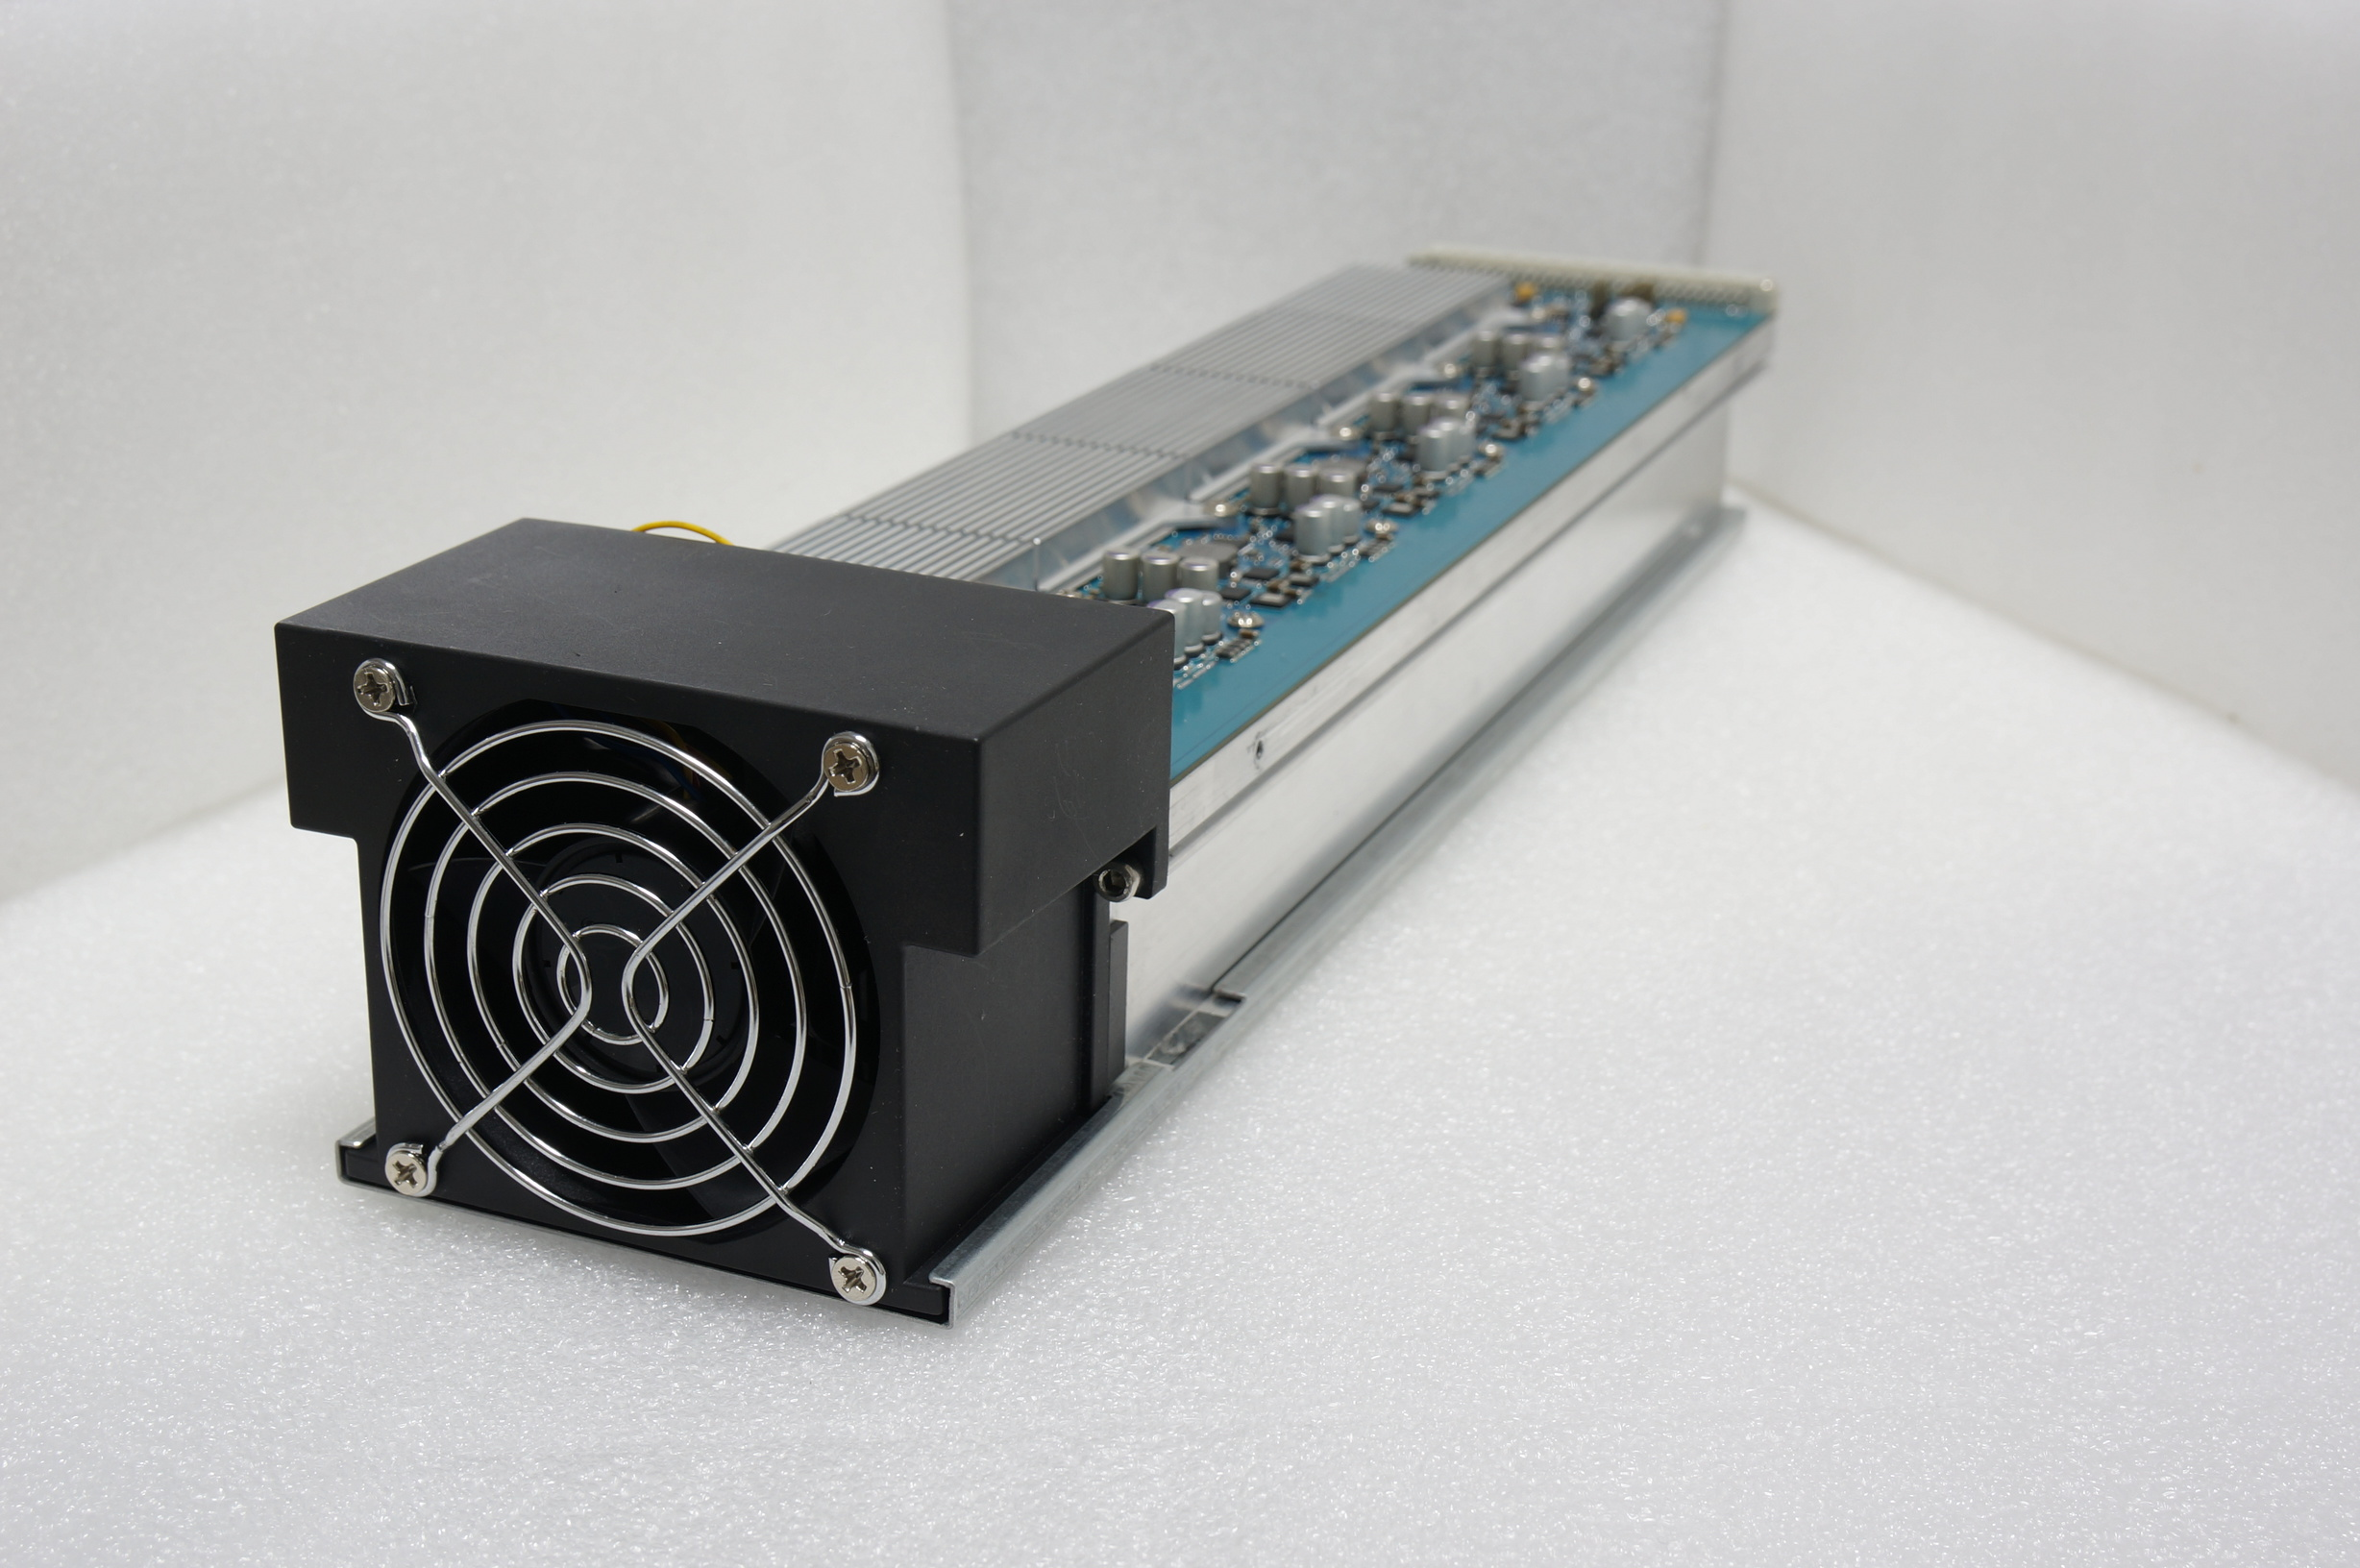 Avalon2-modular-FAN-side.jpg